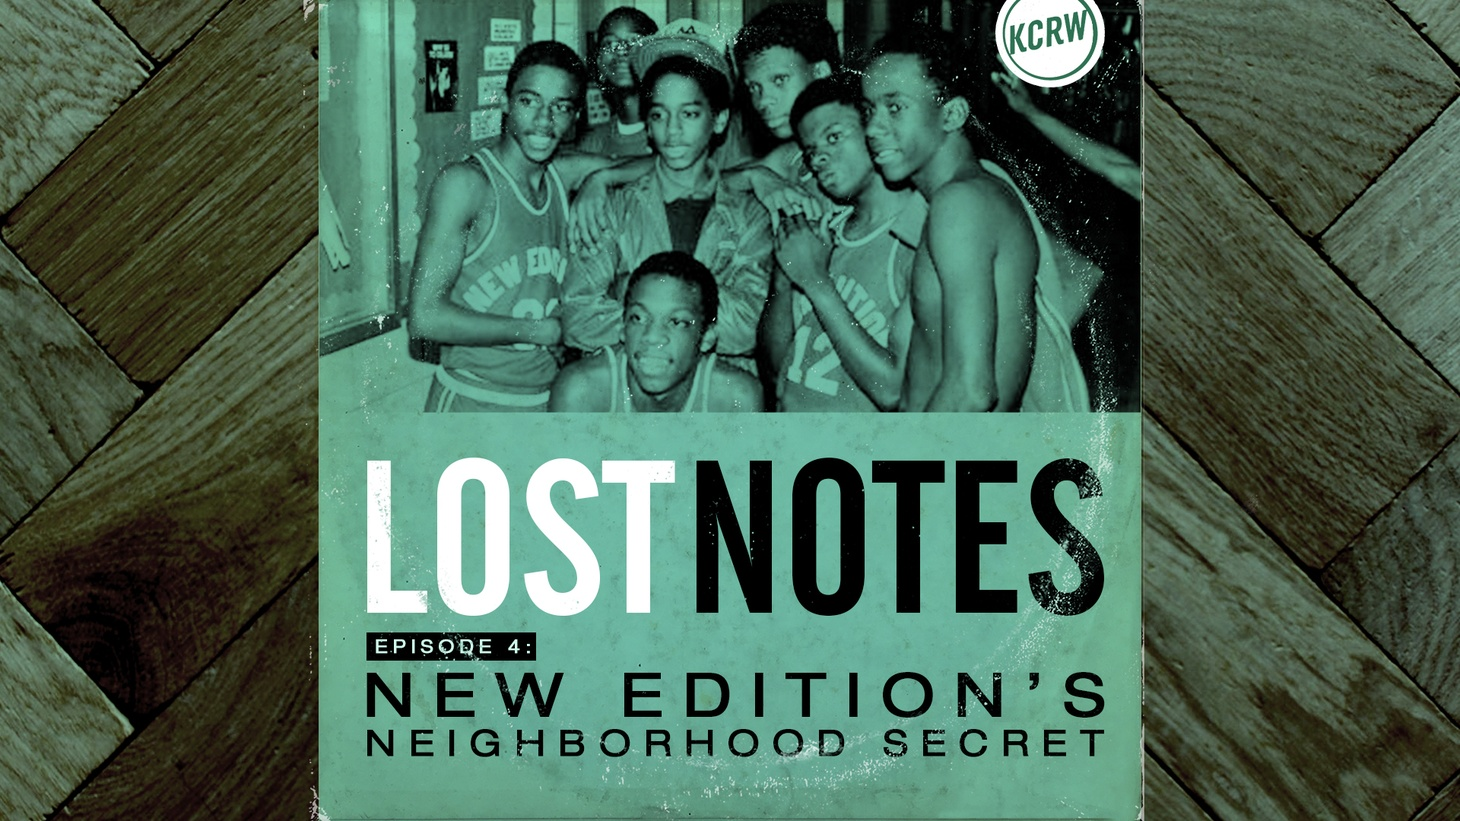 The boys in New Edition were basketball fans from Boston - Celtics country. So what happened when they hung out with the L.A. Lakers in a music video during the height of the 1980s Celtics/Lakers rivalry?